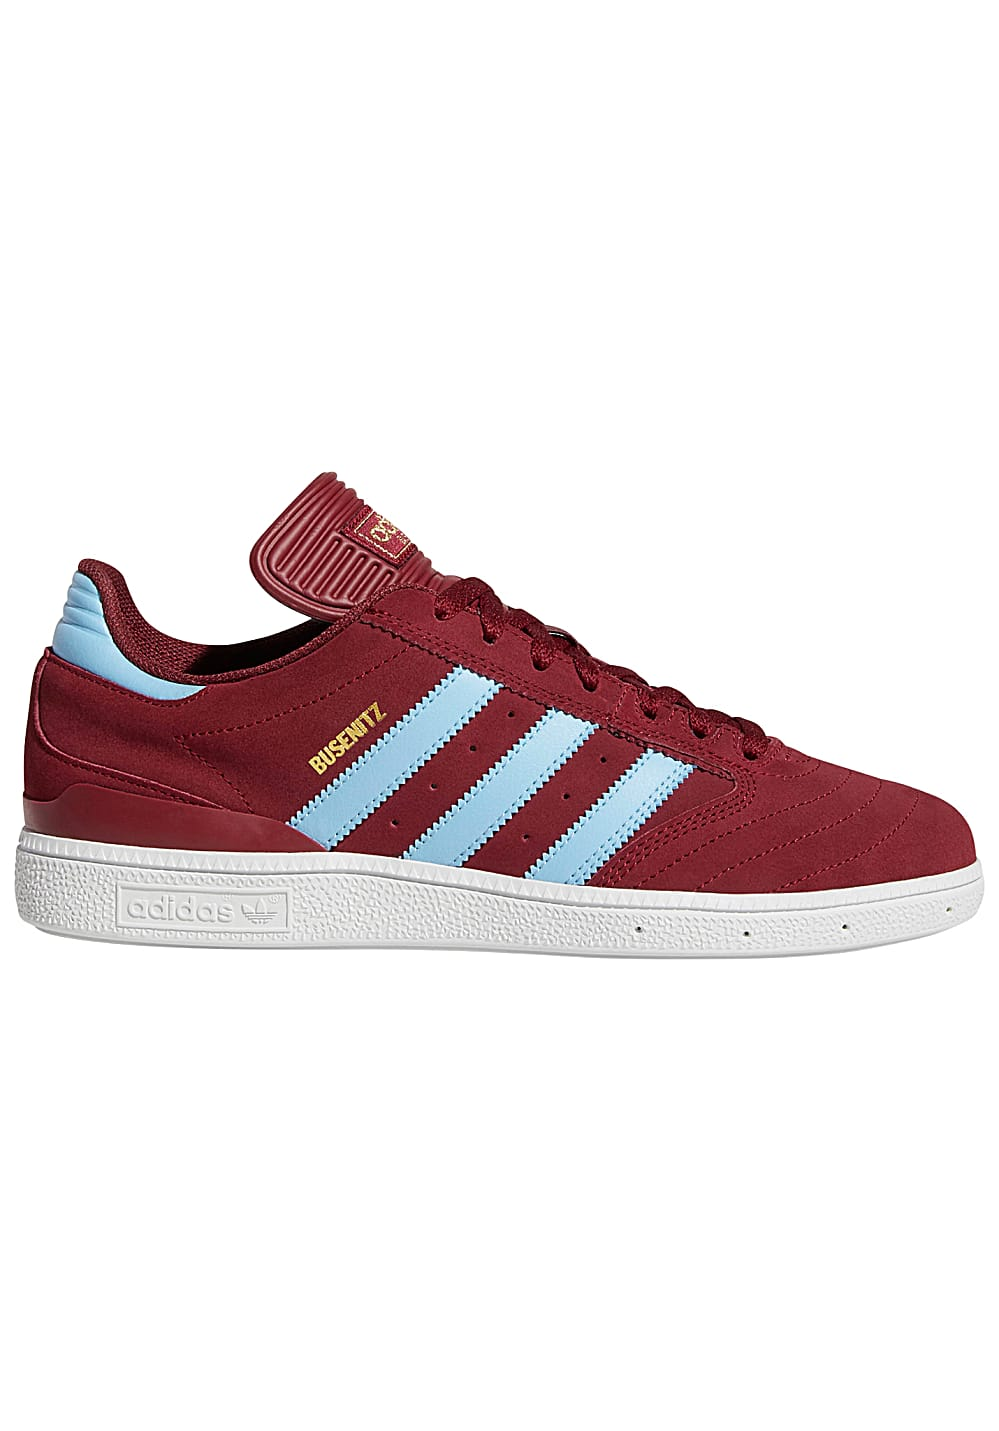 separation shoes 9f51a 0db88 Heren Skateboarding Busenitz Rood Planet Adidas Sneakers Voo